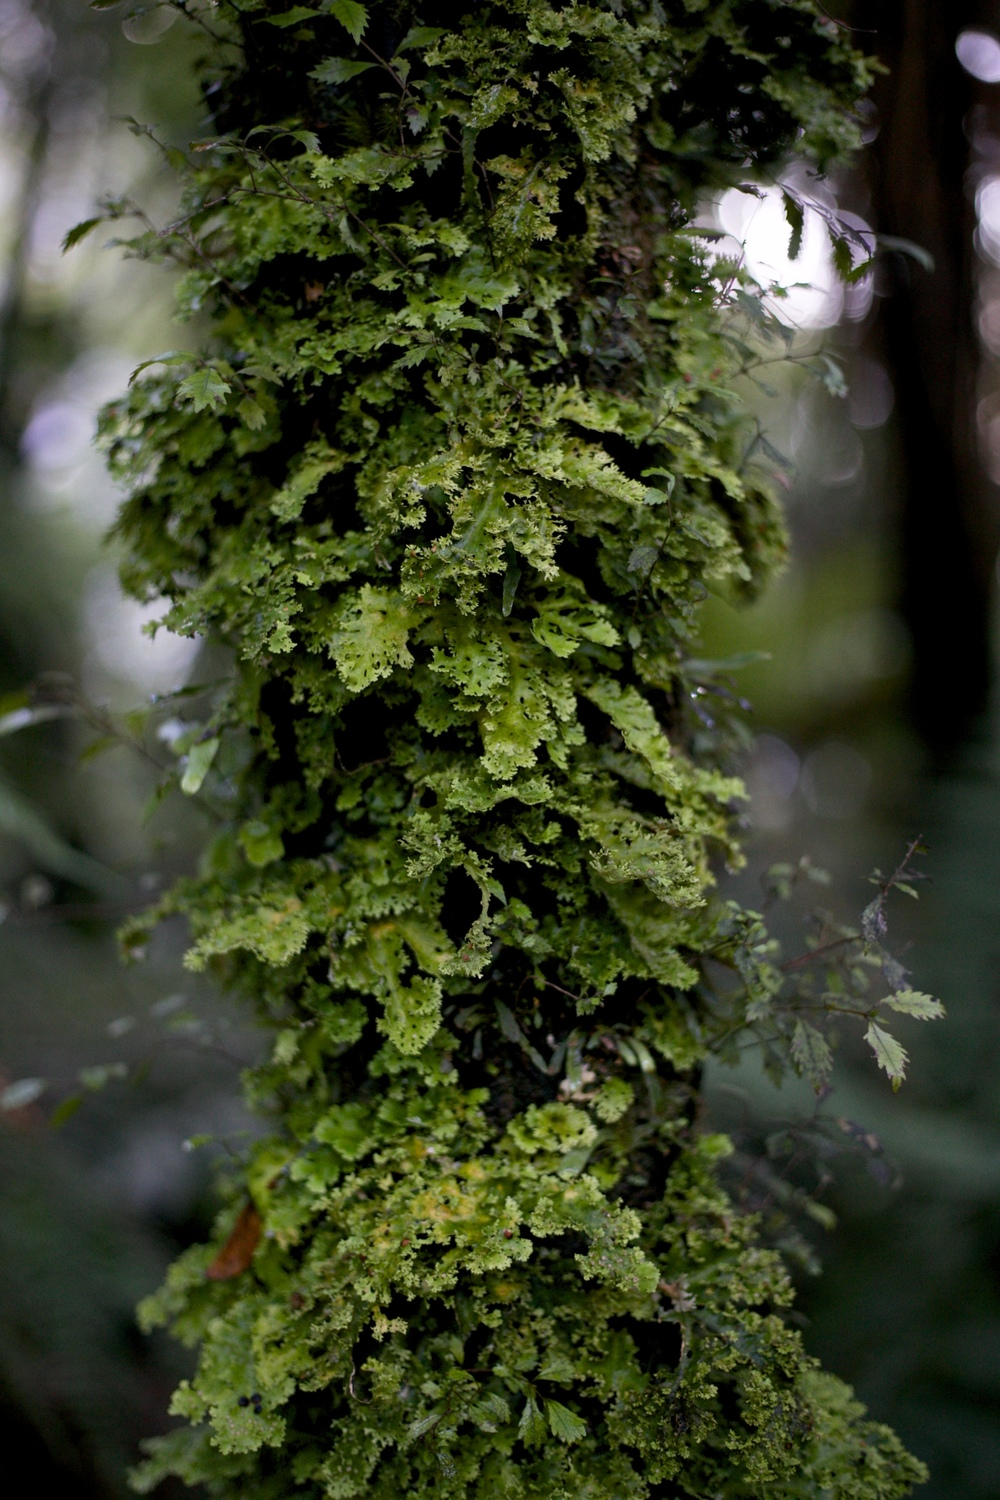 Moss growing on a tree in the native bush, NZ.